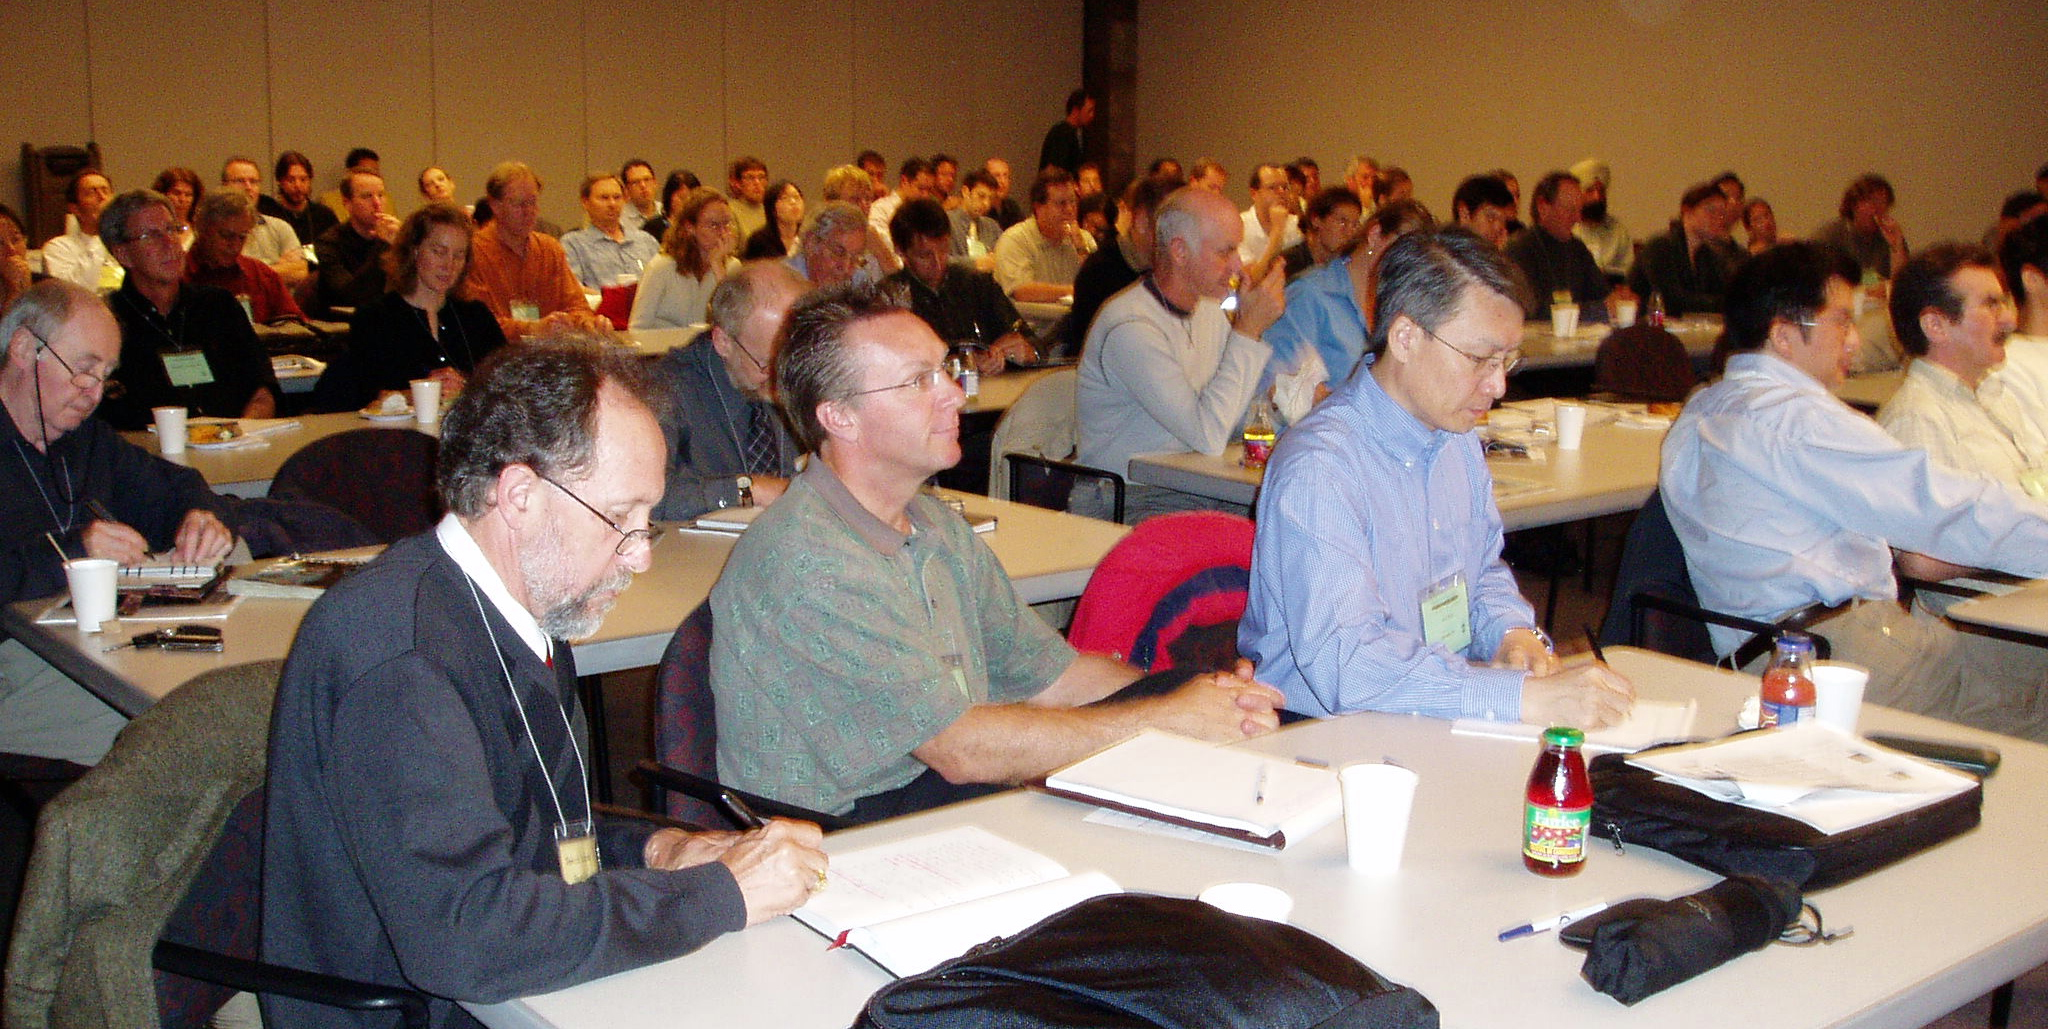 Patrick Lucey (L) in the audience at 2005 workshop headlined by  Peter Coombes